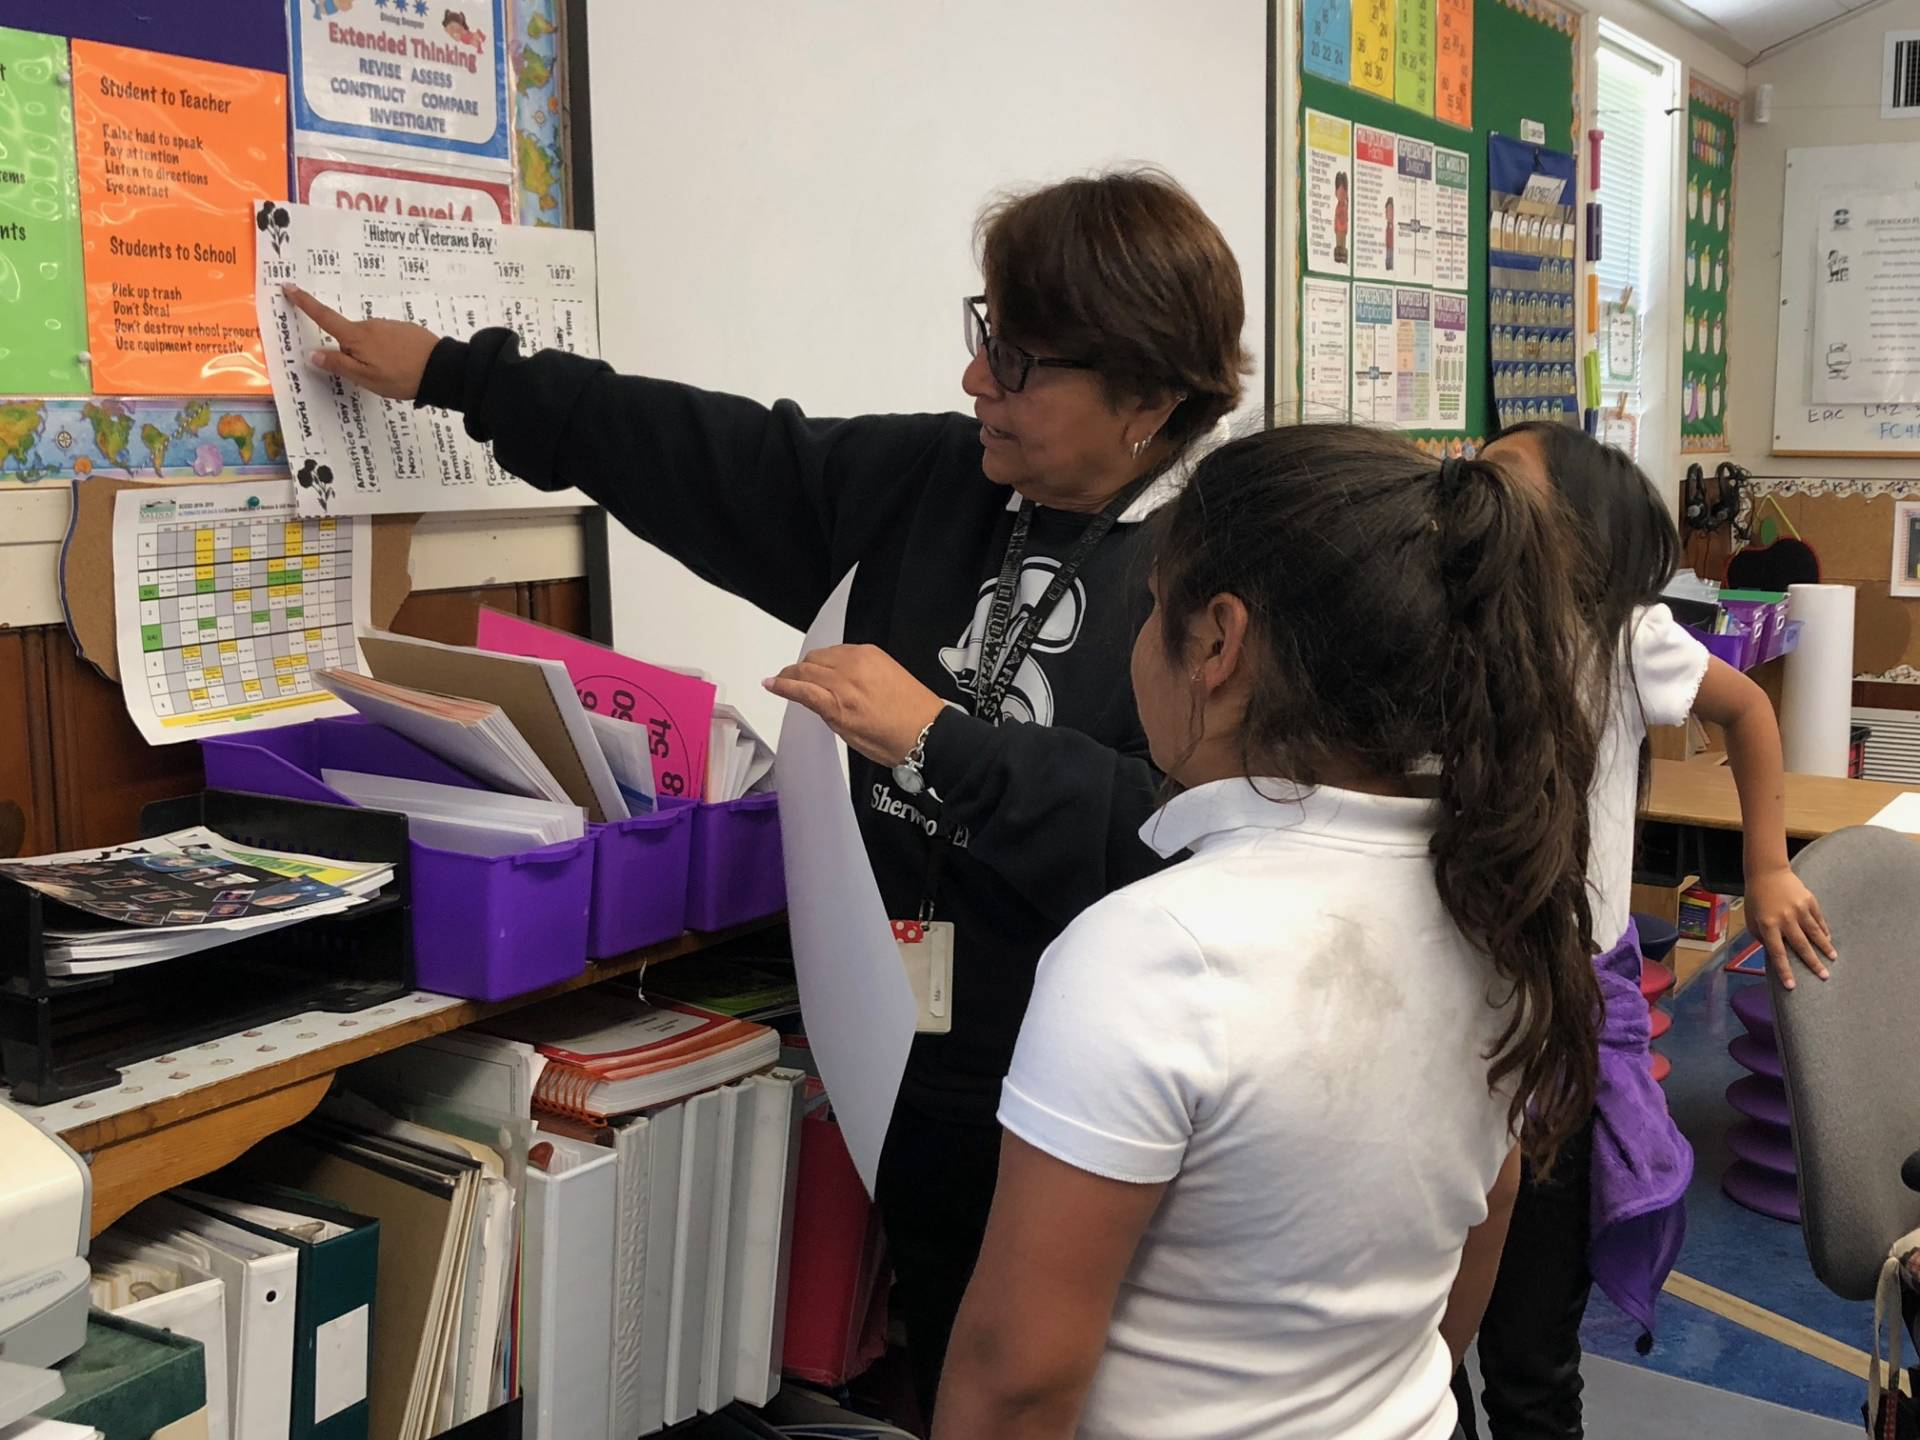 Maria Castellanoz, a third-grade teacher at Sherwood Elementary School in Salinas, says about 80 percent of her students this year are homeless. Vanessa Rancaño/KQED